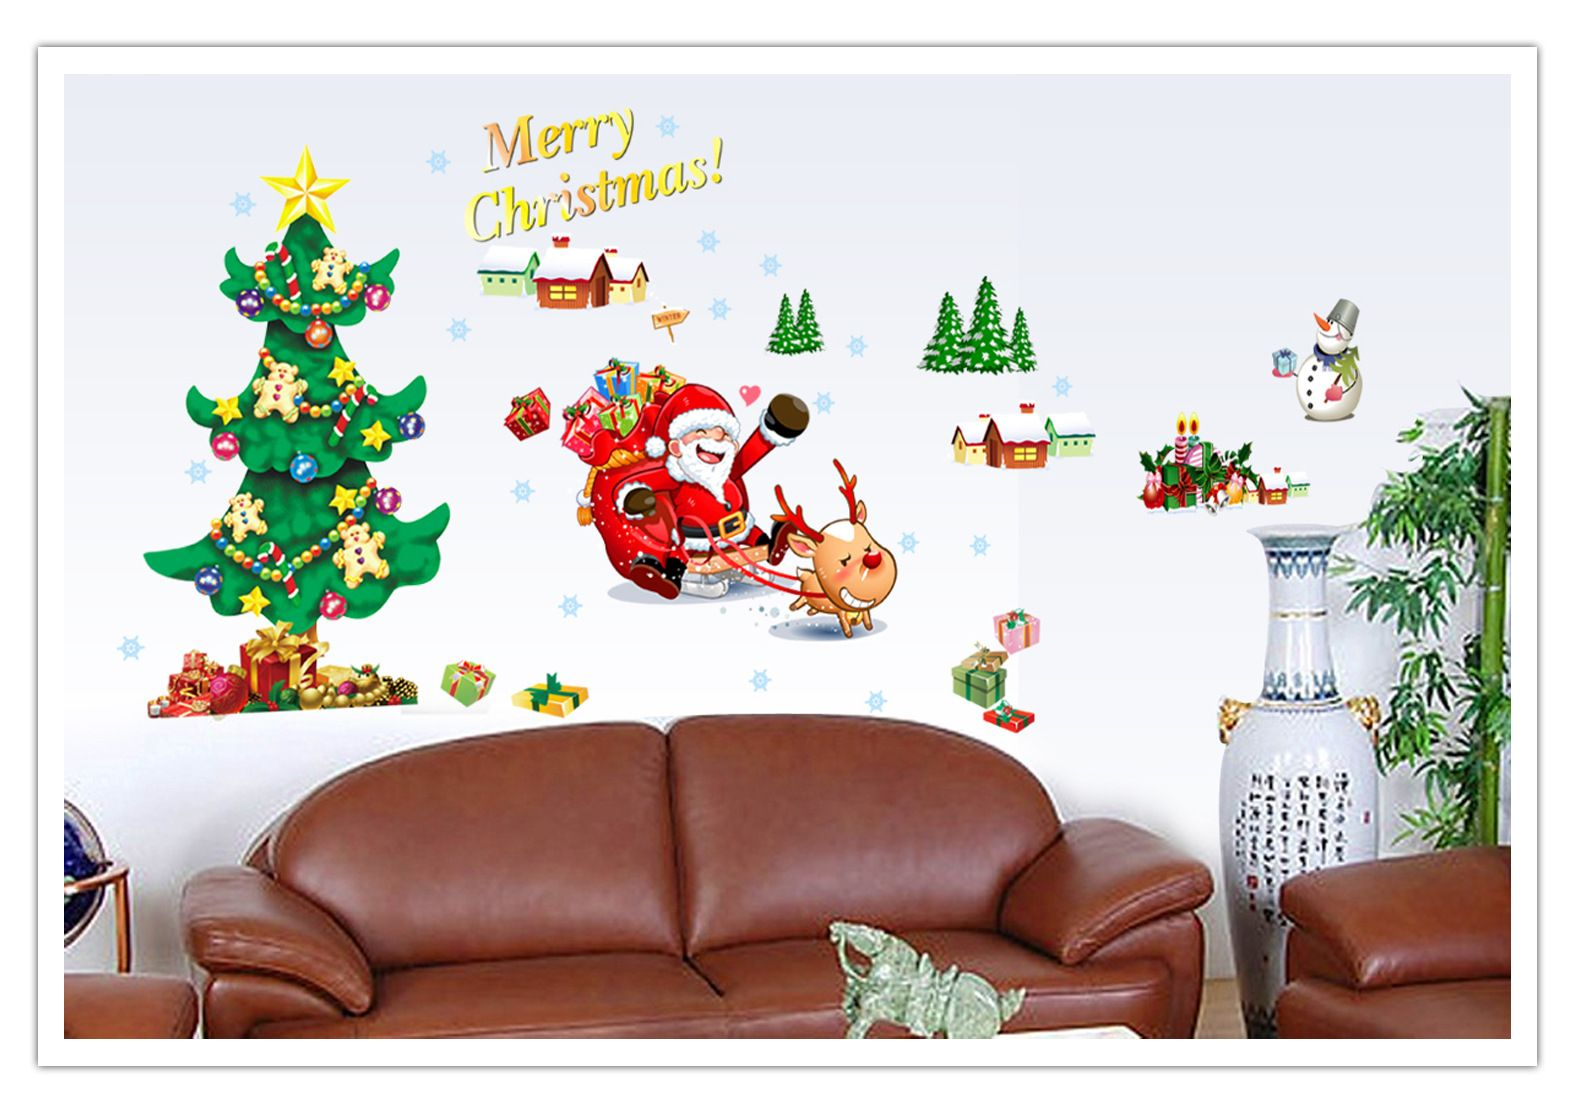 Merry Christmas Quote Wall Art Decal: Merry Christmas Store Decor Removable Wall Sticker